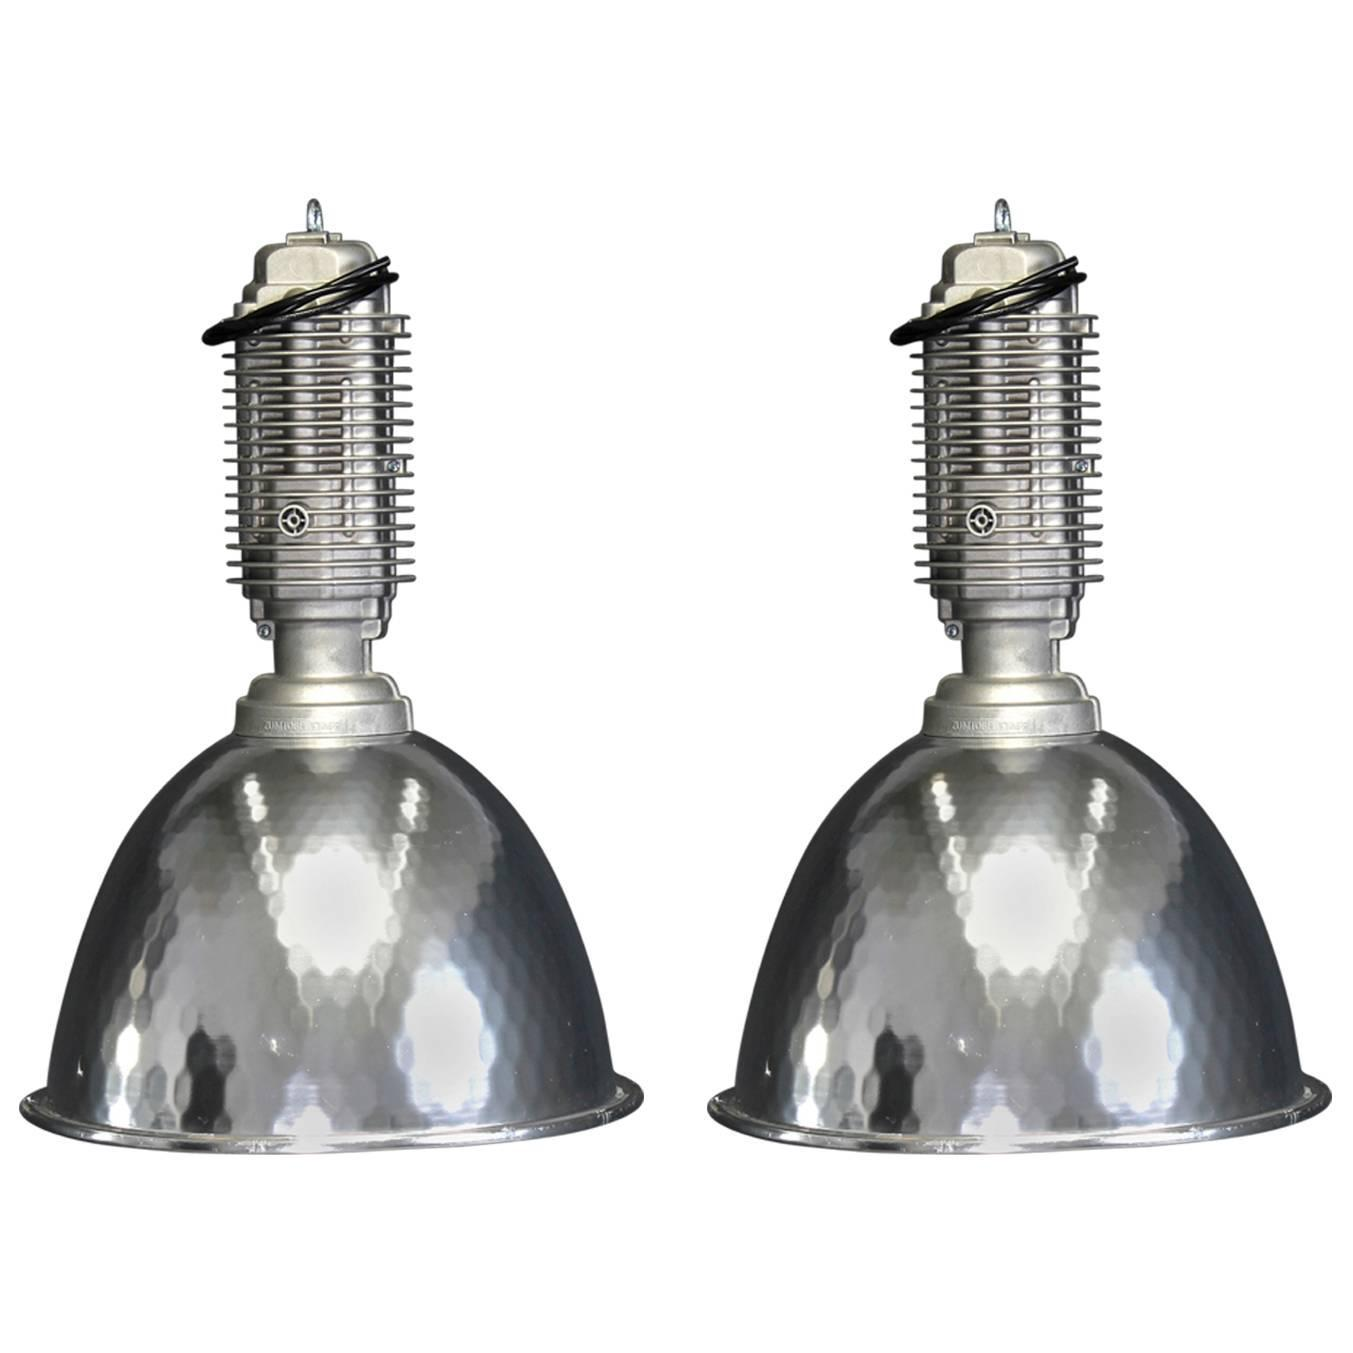 Industrial Lamps For Sale Large Vintage Industrial Pendant Lamps Or Ceiling Lamps